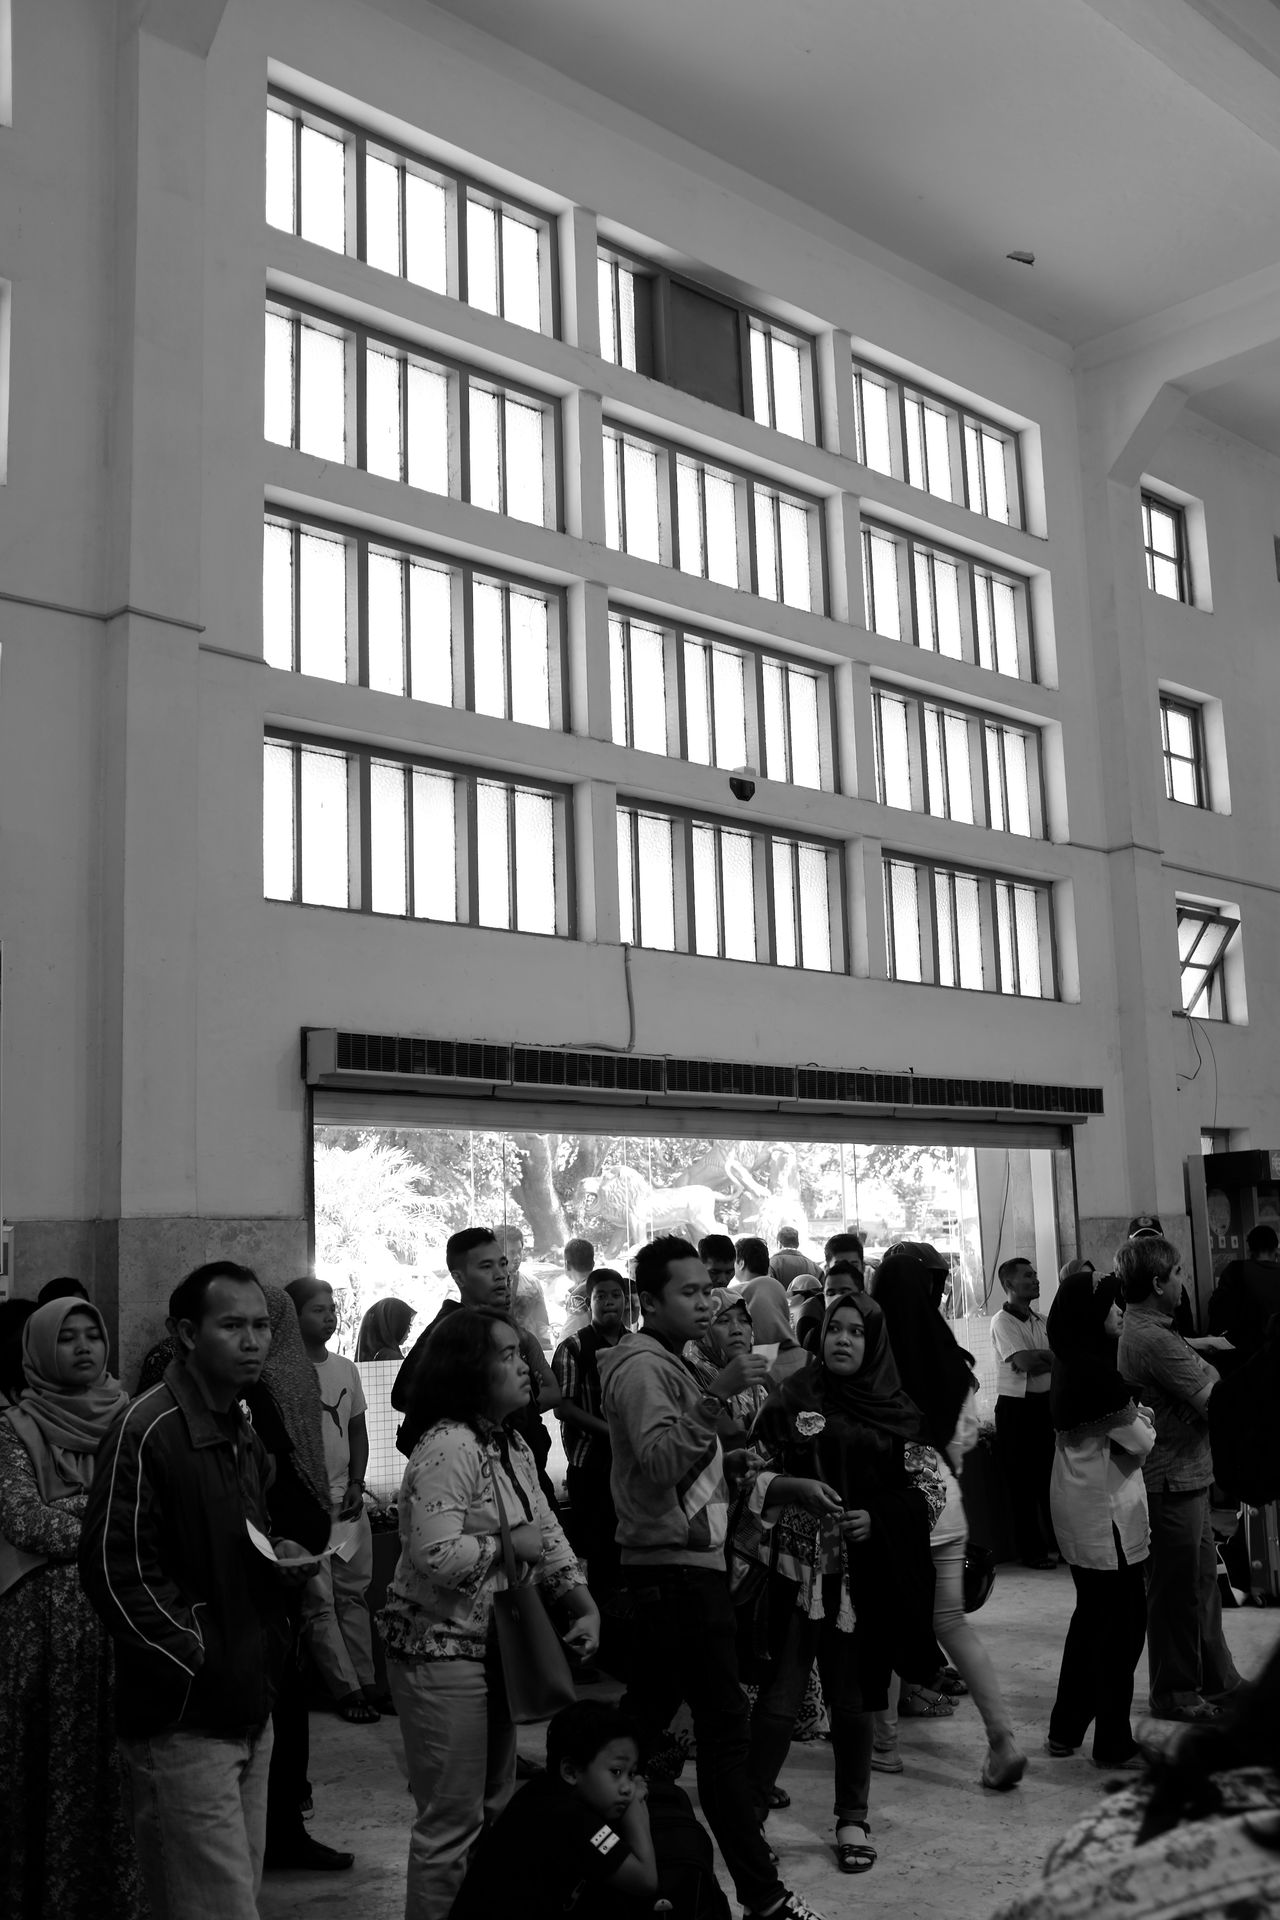 B&w Street Photography Black And White Busy Strangers Candid City Life Day Going Places INDONESIA Monochrome Travel Urban Lifestyle The Street Photographer - 2017 EyeEm Awards Train Station Crowded Waiting Malang